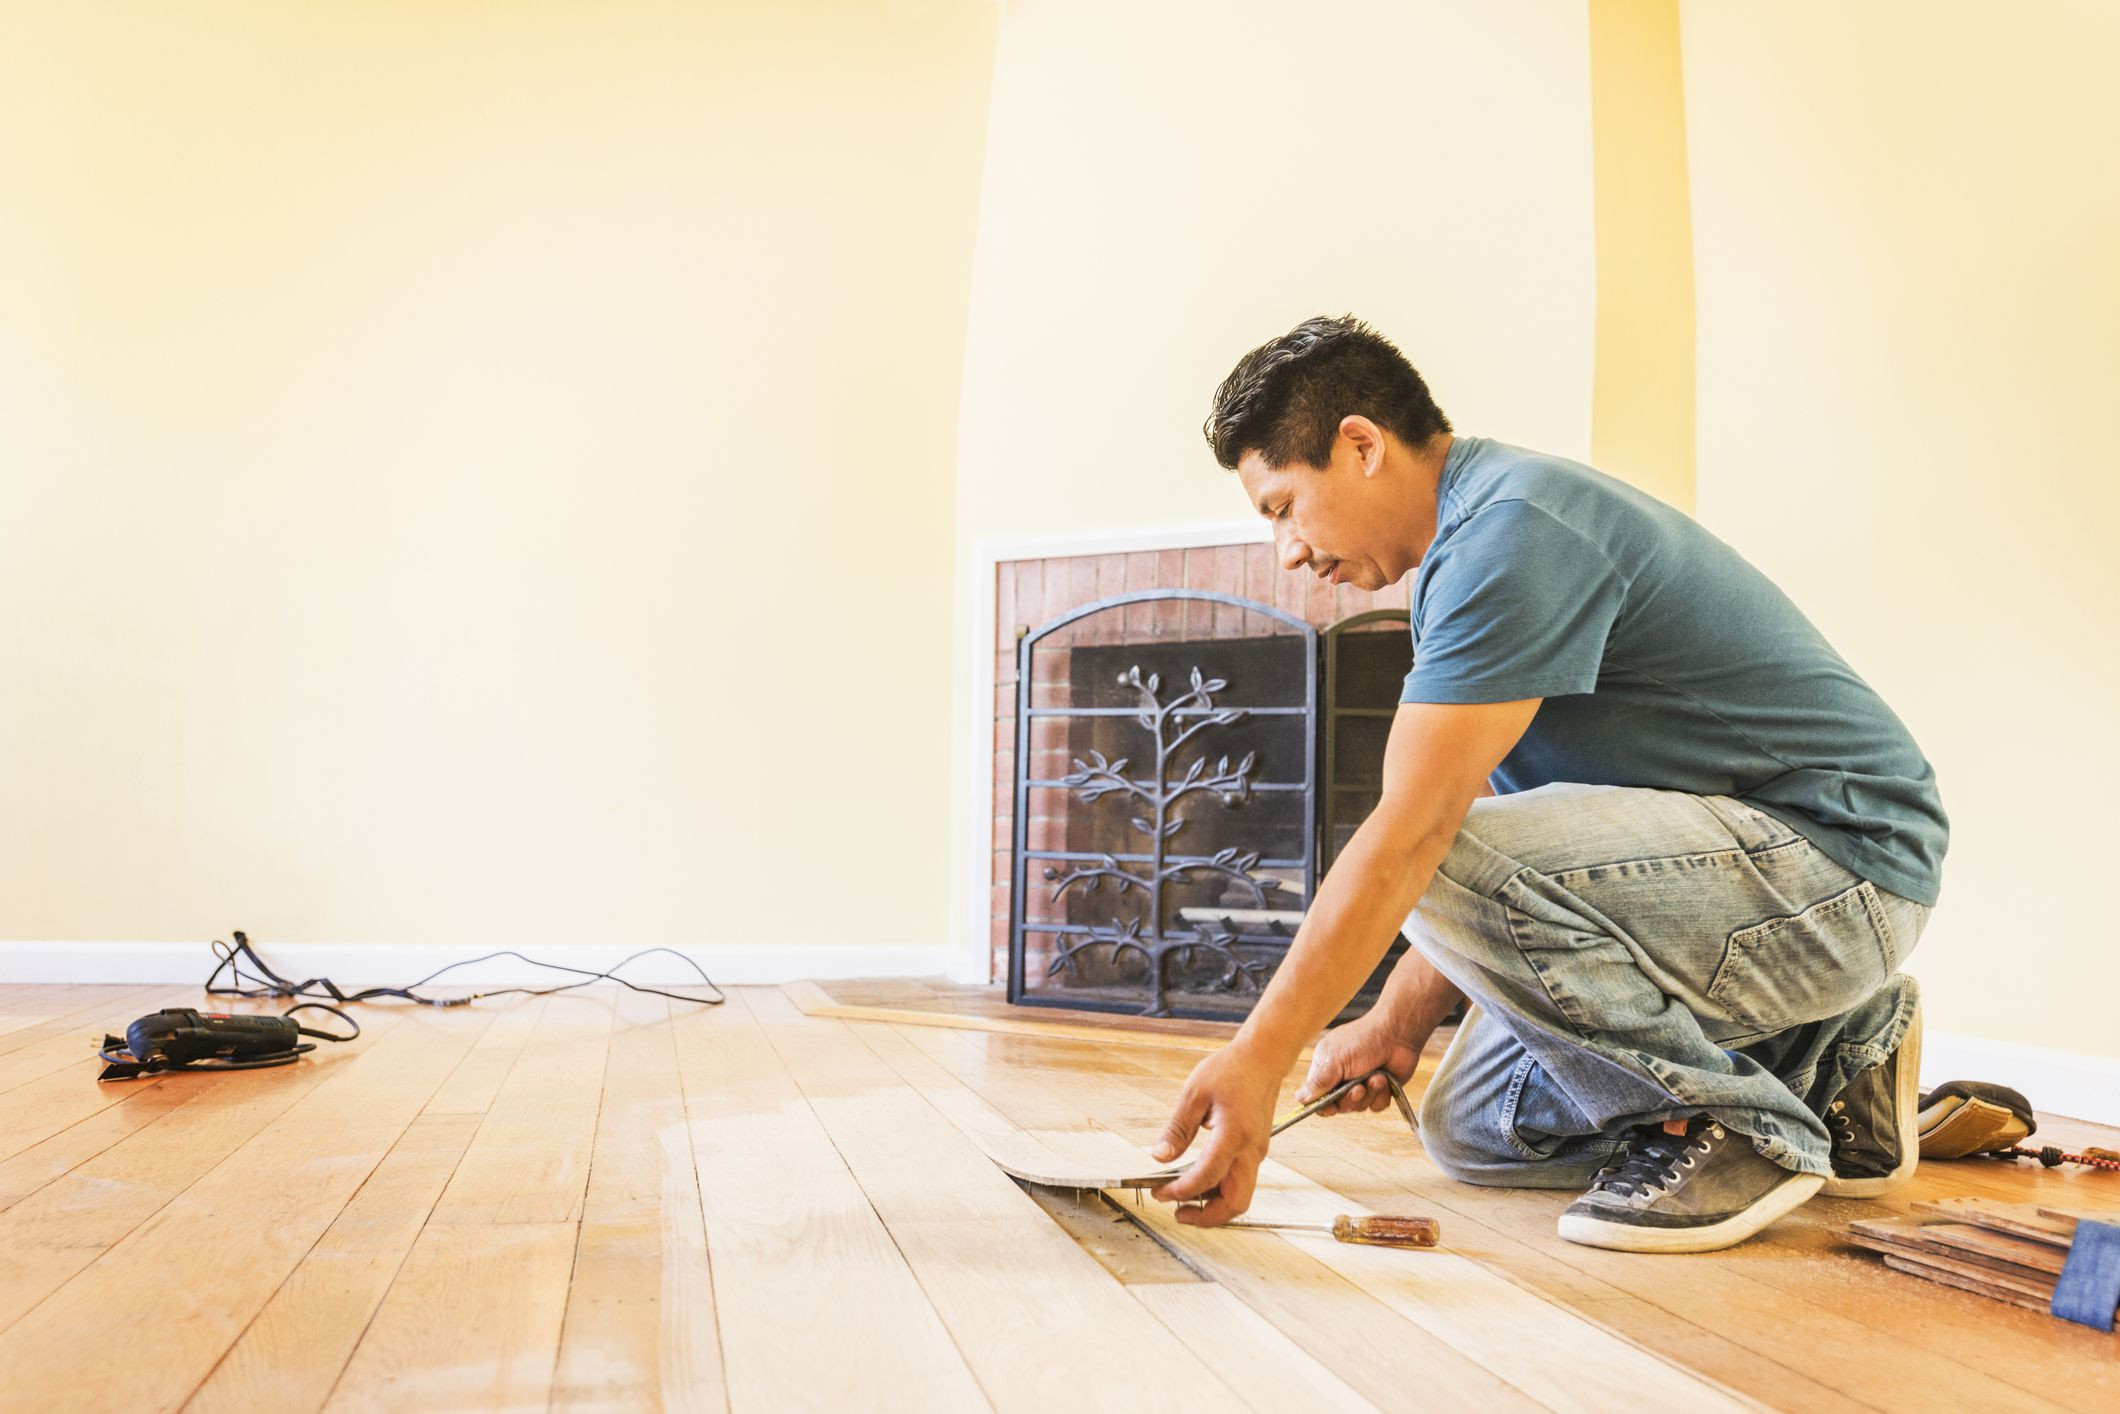 salvaged hardwood flooring for sale of hardwood installer how to hire and what to expect with installing wood flooring 592016327 57af51a23df78cd39cfa08d9